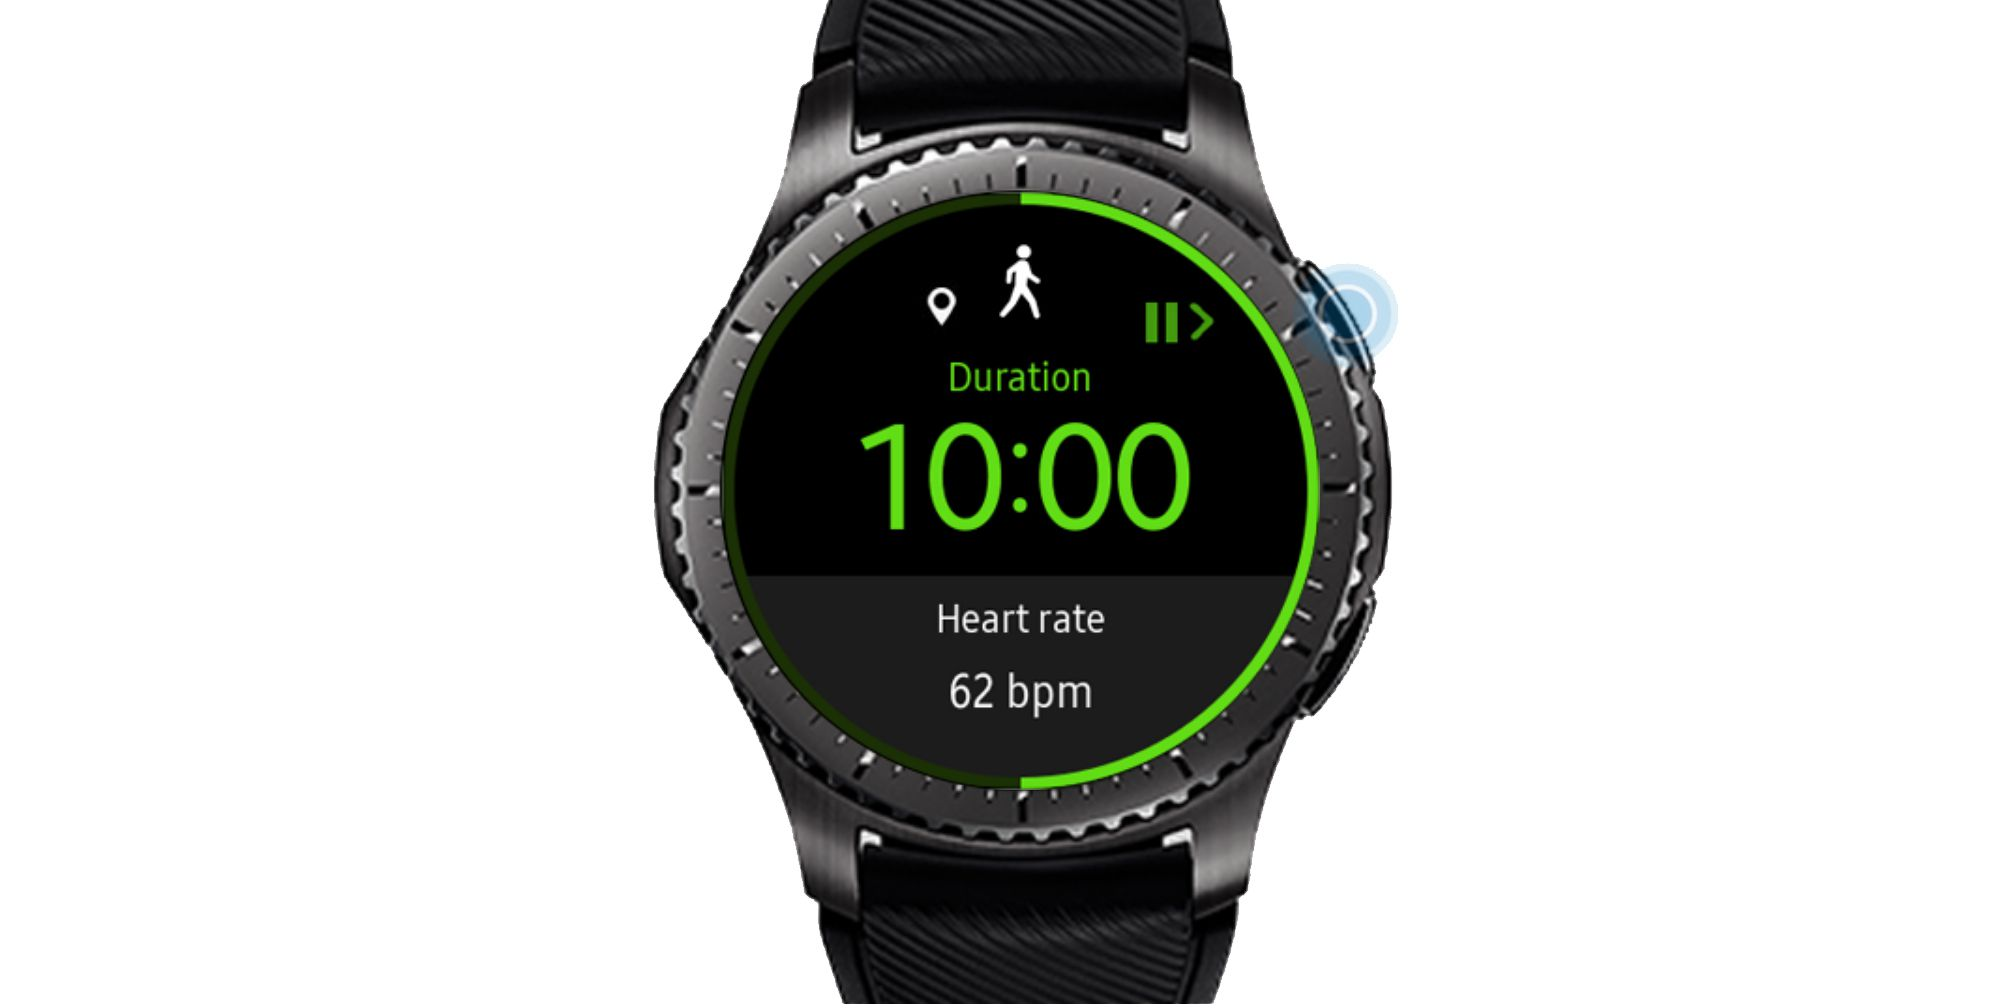 The 5 Best Samsung Gear S3 Watch Features You Should Try